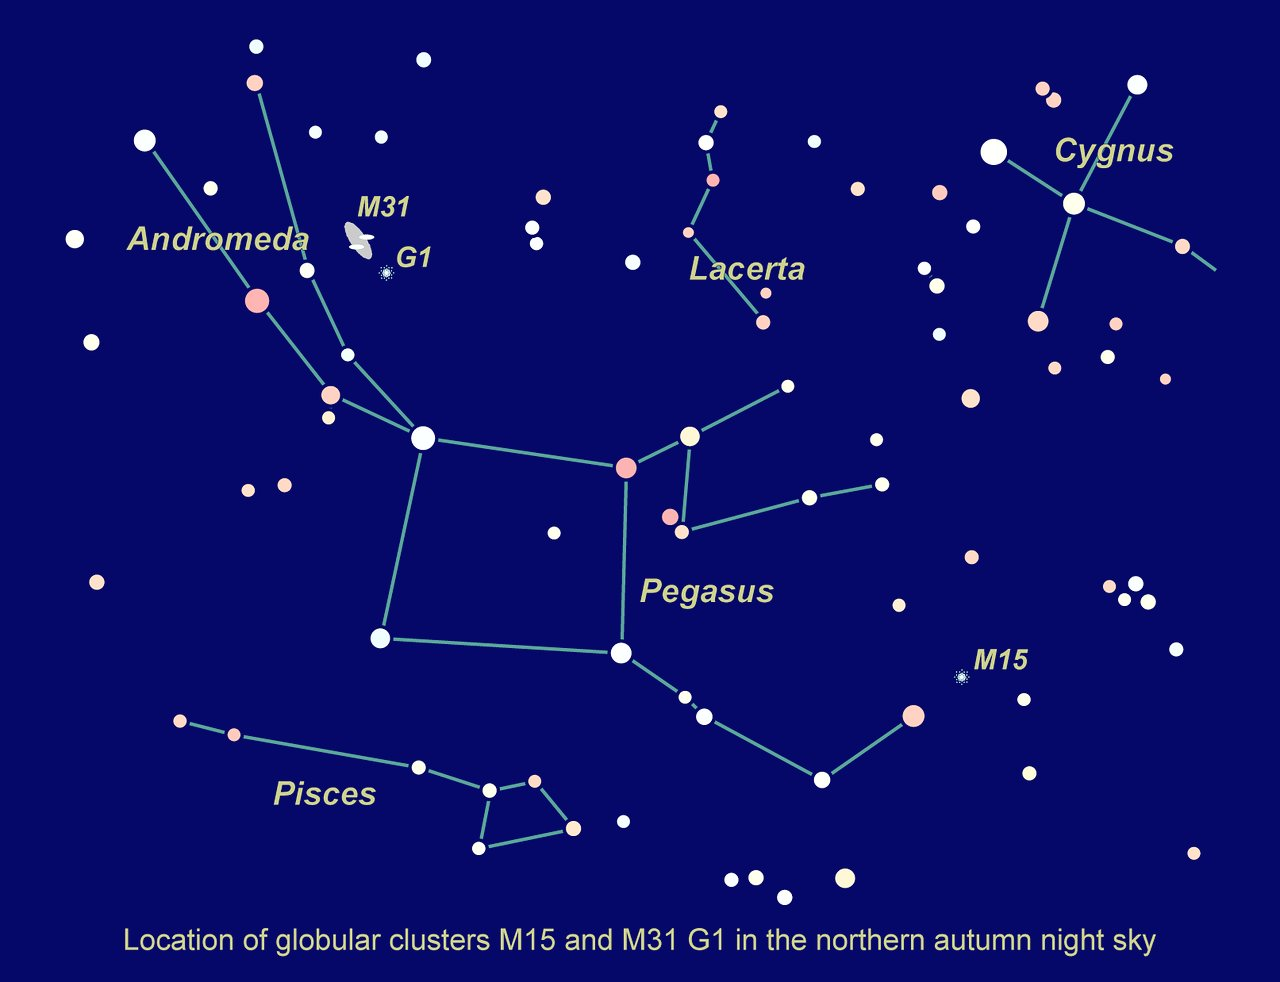 Location of M15 and M31 G1 in the northern autumn sky ...